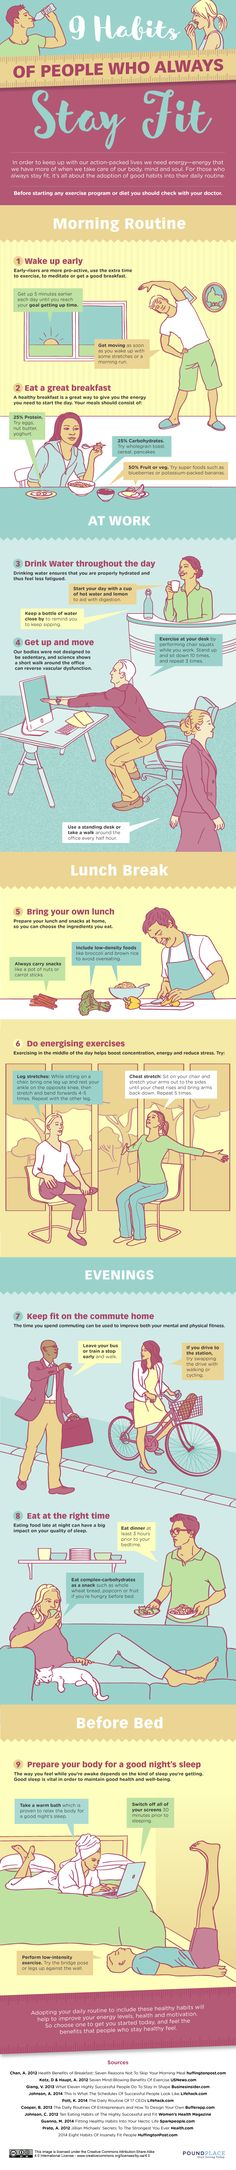 9 Habits of People Who Always Stay Fit: Infographic